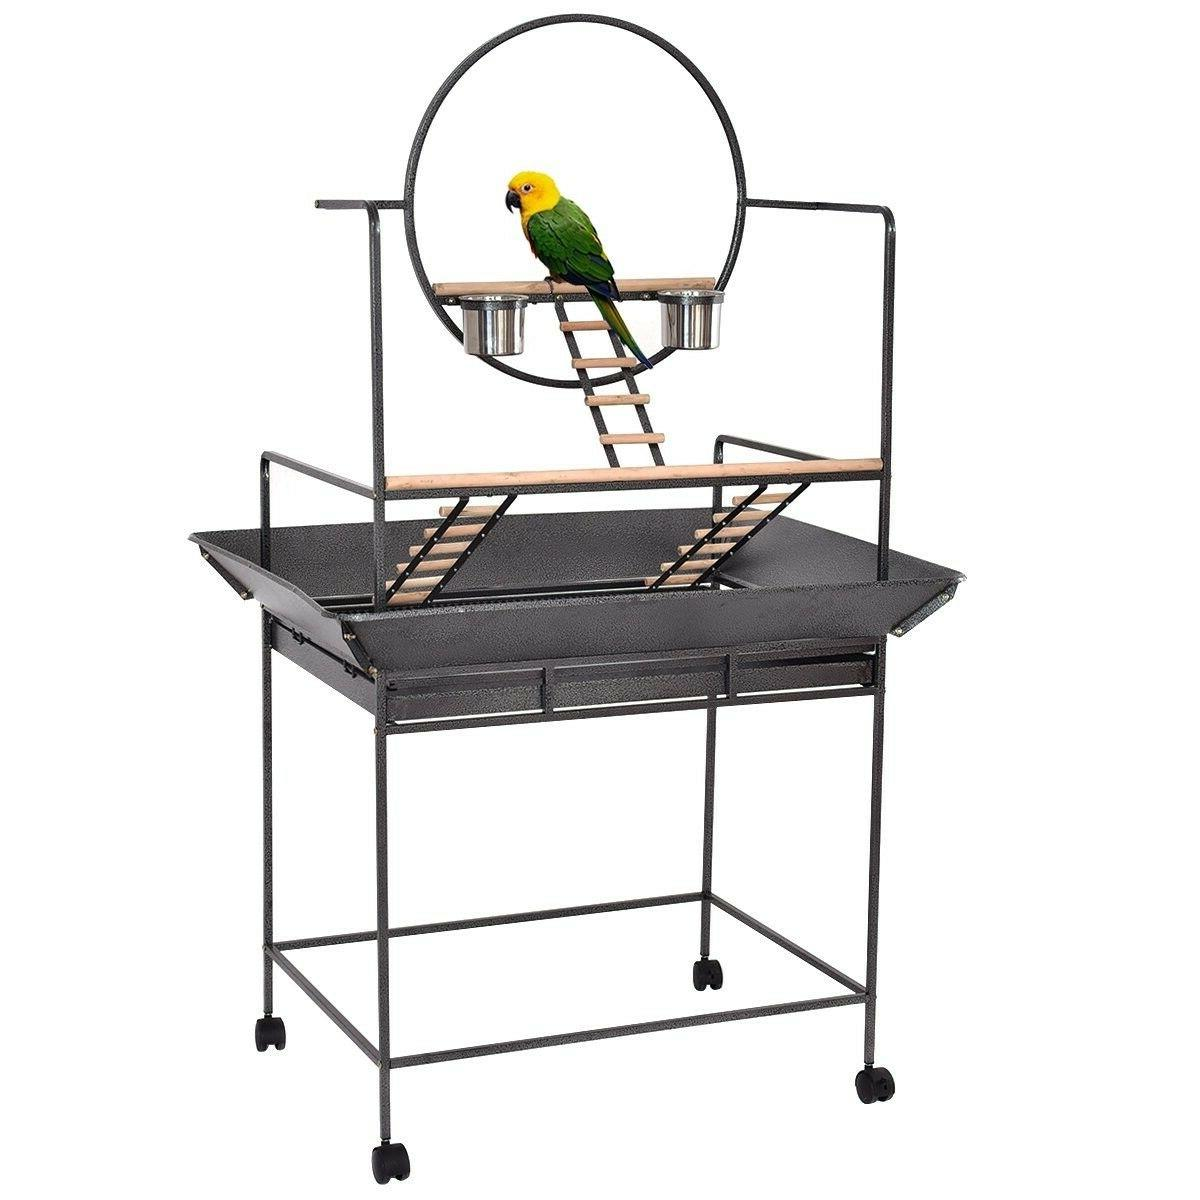 Giantex Play Stand Bird Cage Perch with Ring Ladders and